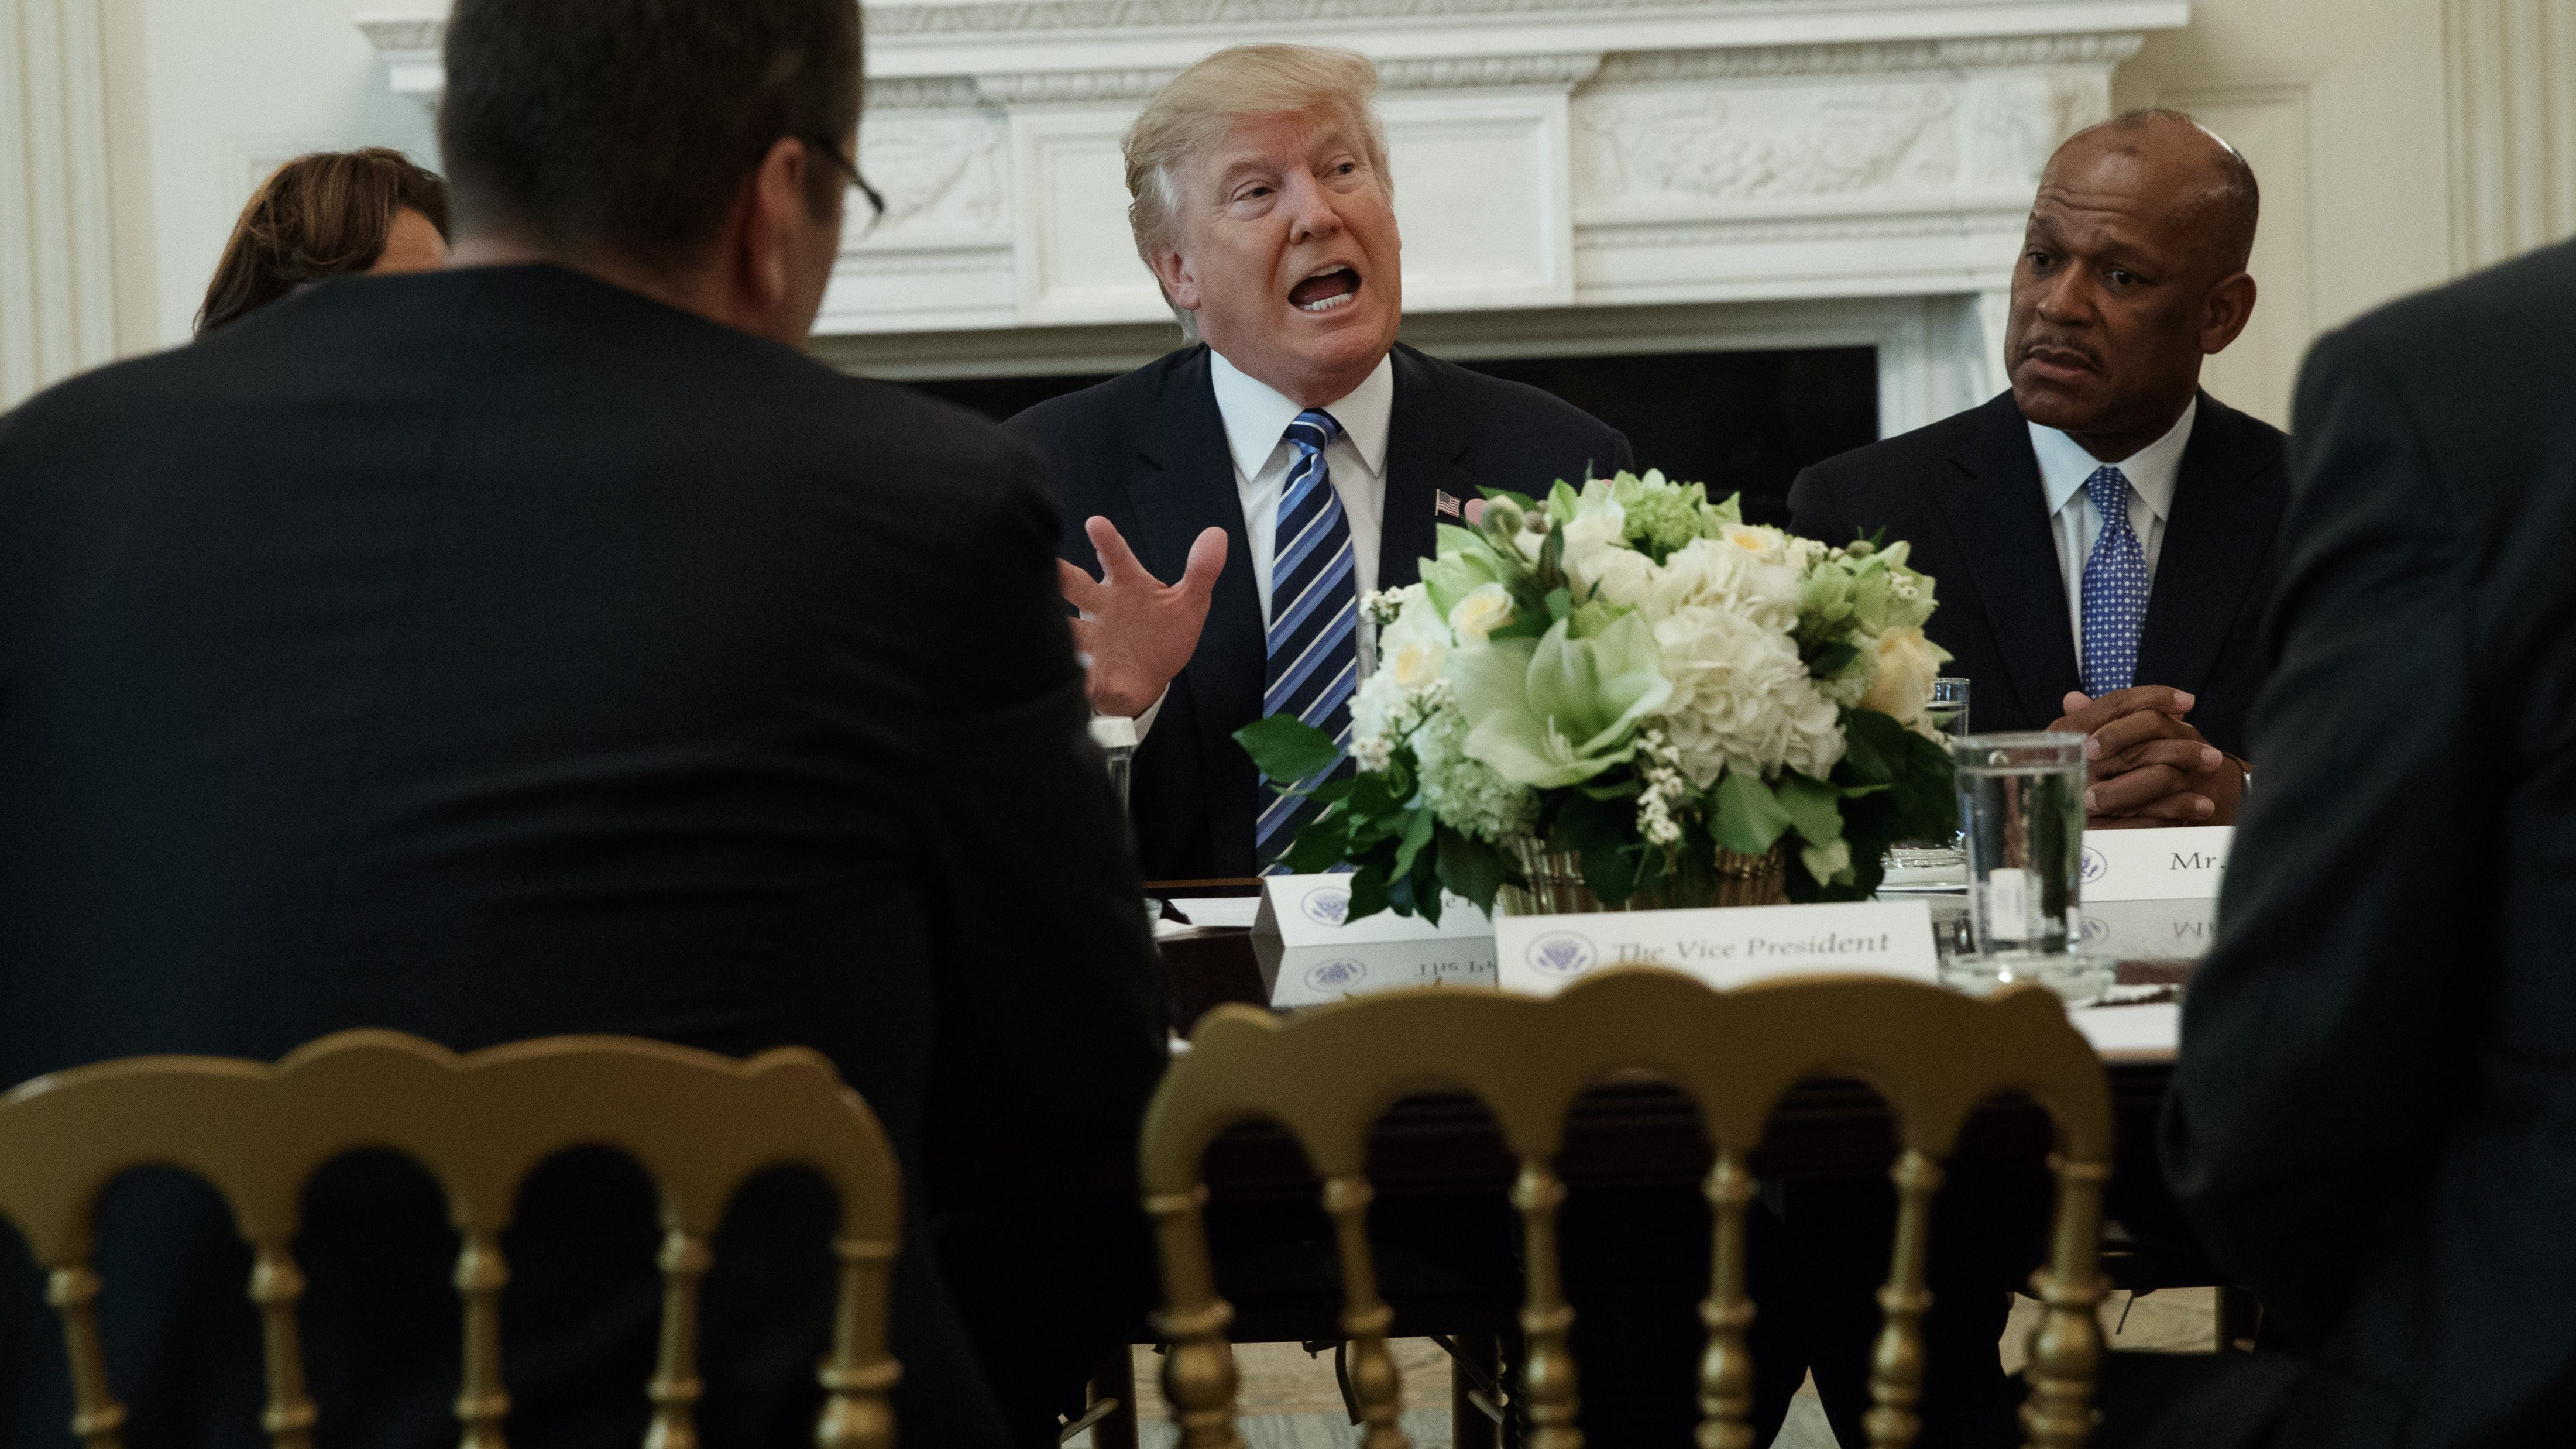 UPS President of US operations Myron Gray, right, listens as President Donald Trump speaks during a meeting with airline executives in the State Dining Room of the White House in Washington, Thursday, Feb. 9, 2017. (AP Photo/Evan Vucci)